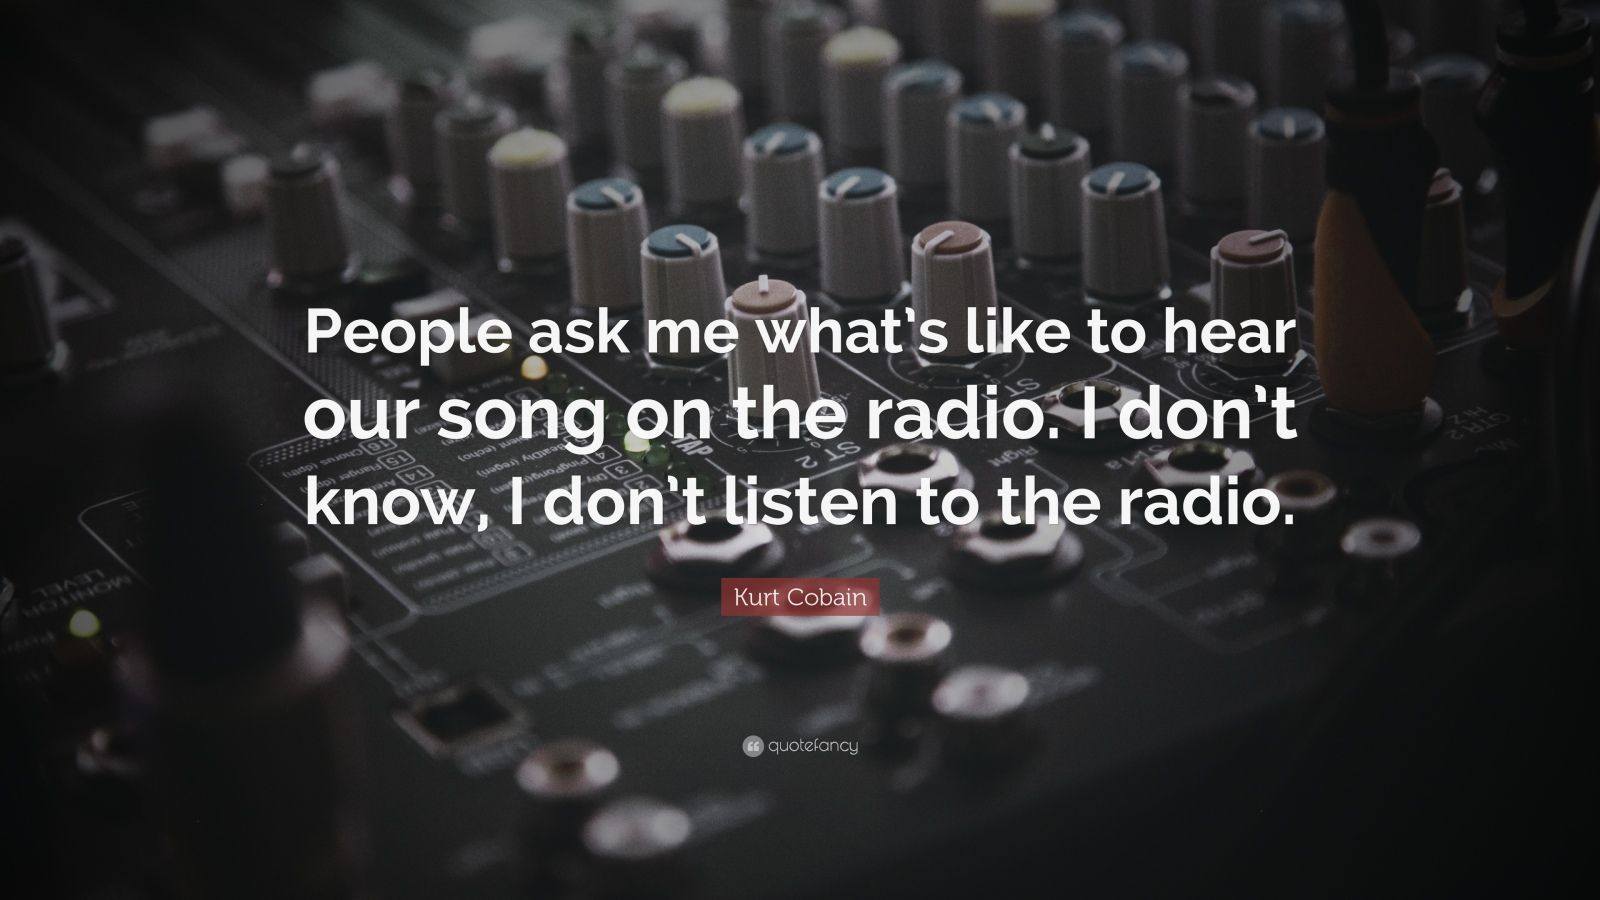 """Kurt Cobain Quote: """"People ask me what's like to hear our song on the radio. I don't know, I don't listen to the radio."""""""